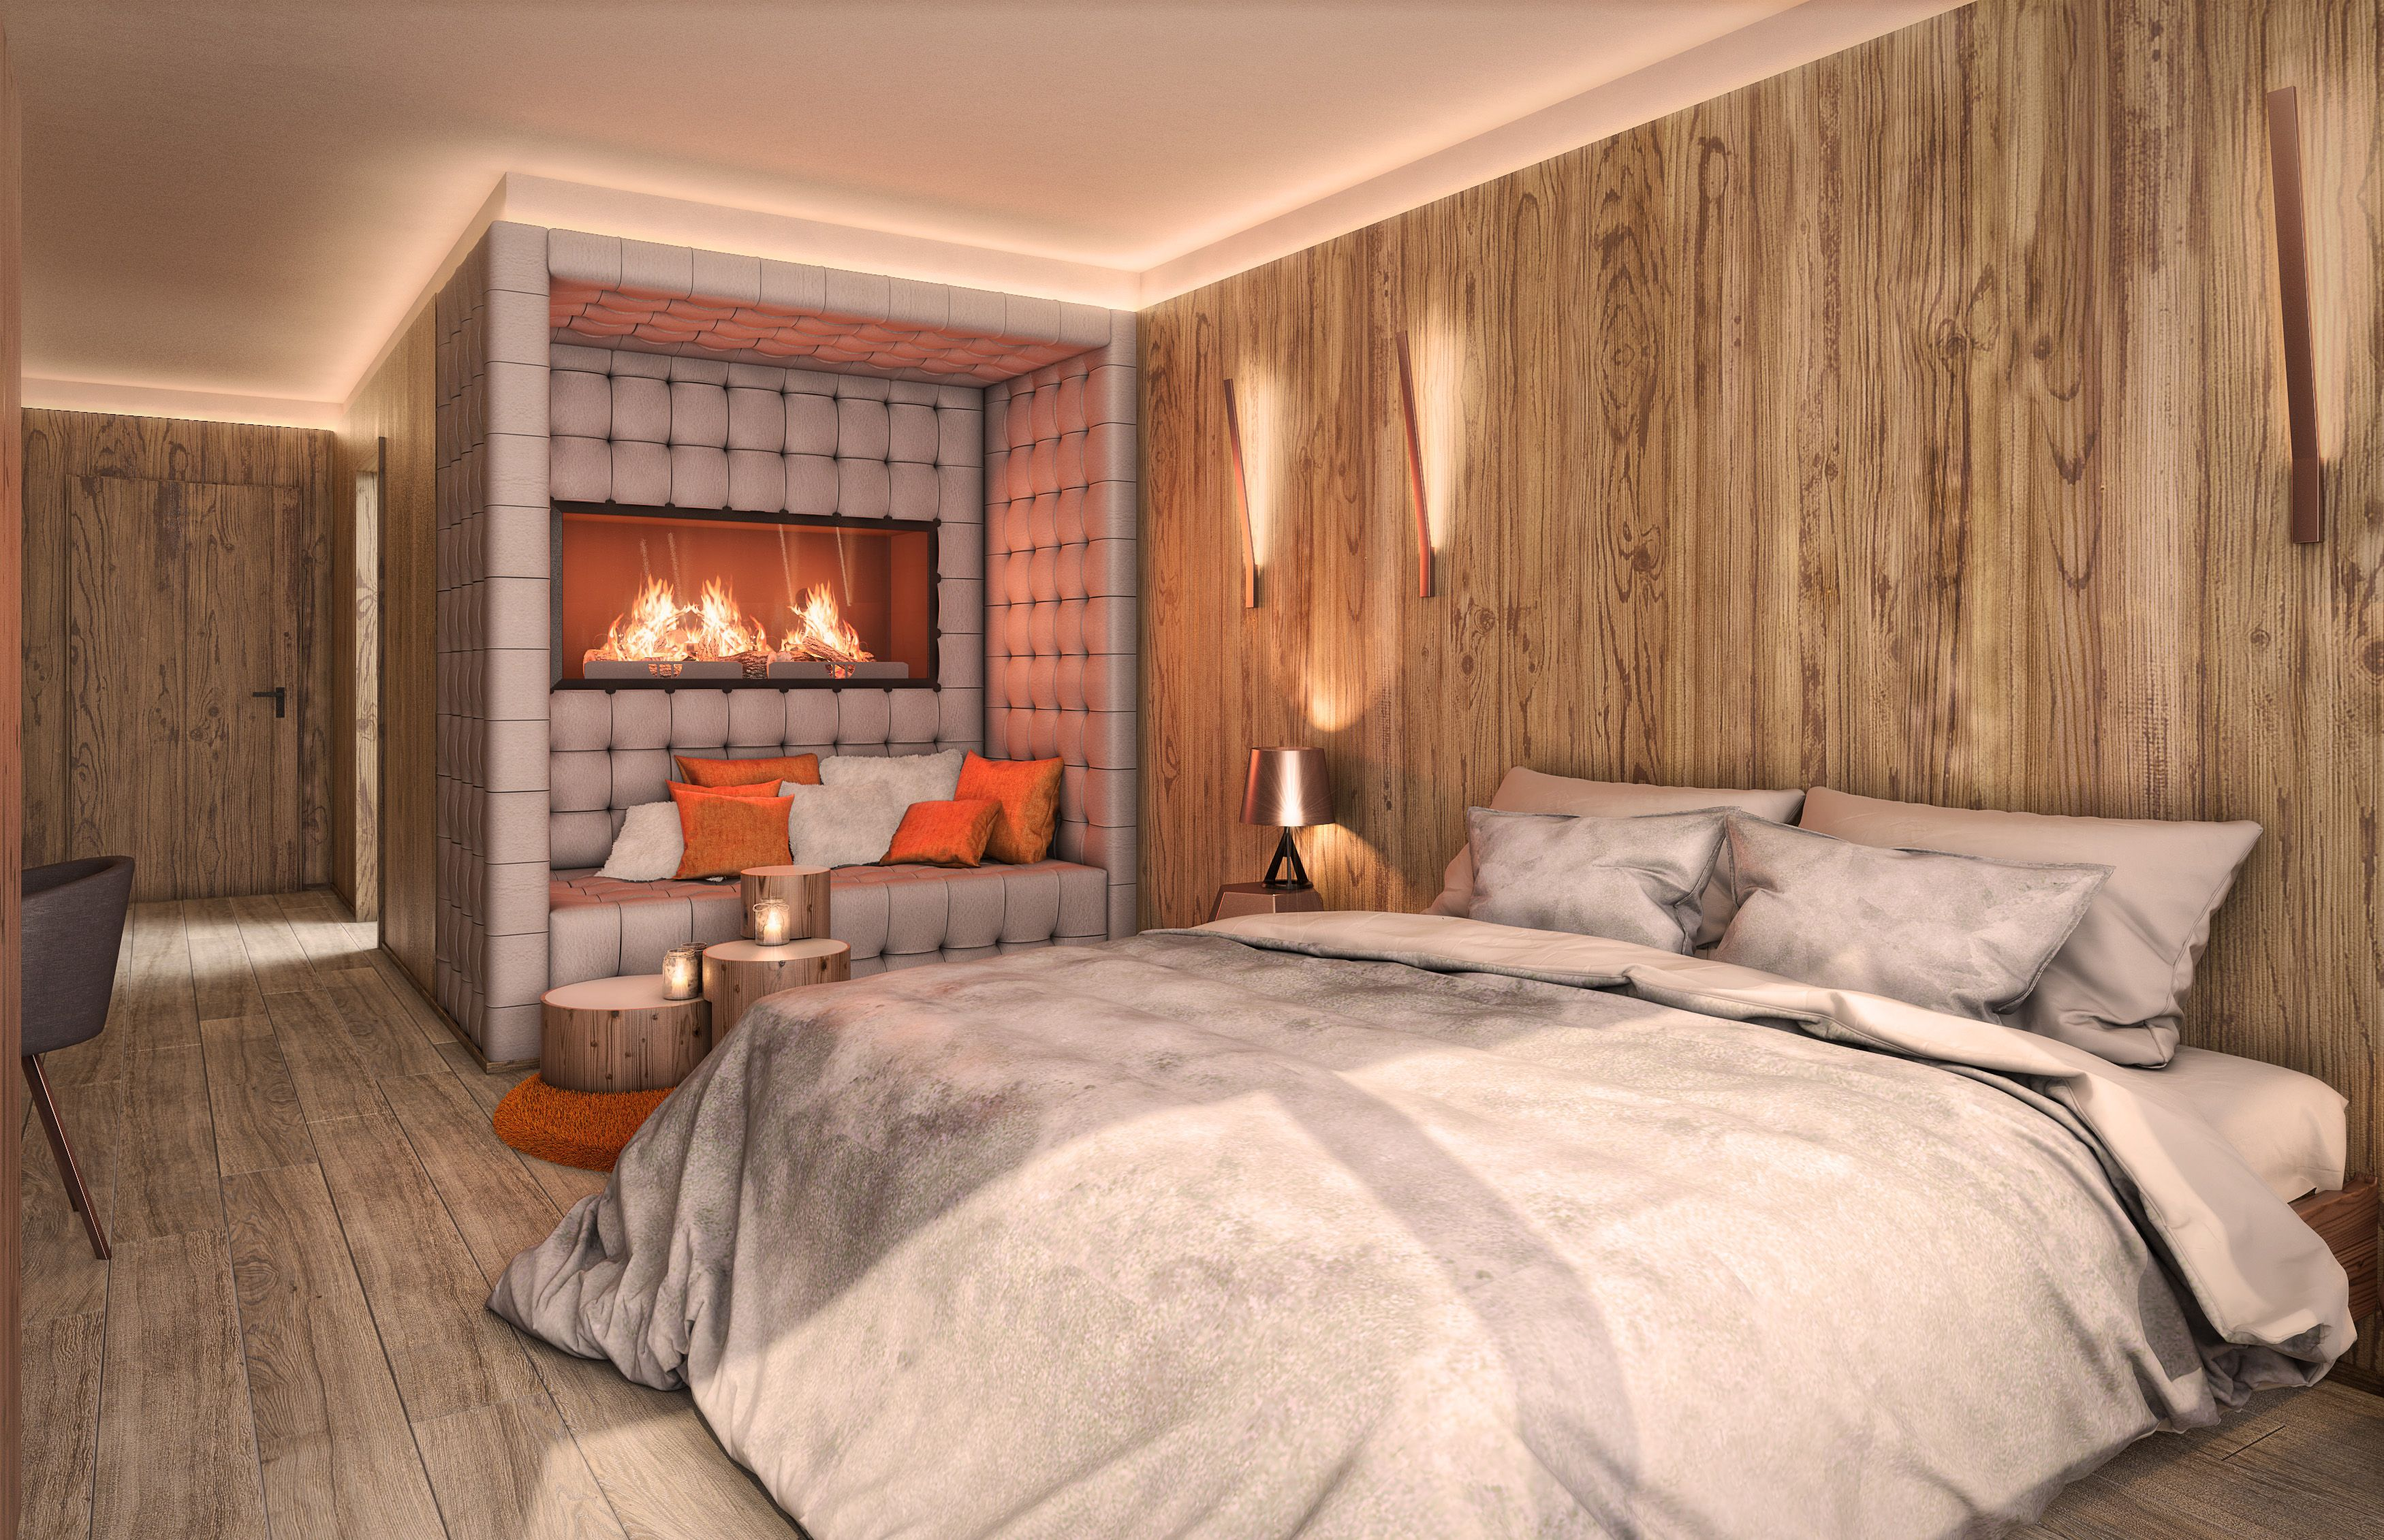 New suite type Bergfeuer @LINDERHOF from May 2016! #mountainfire #suite #new #hotel #luxury #wood #architecture